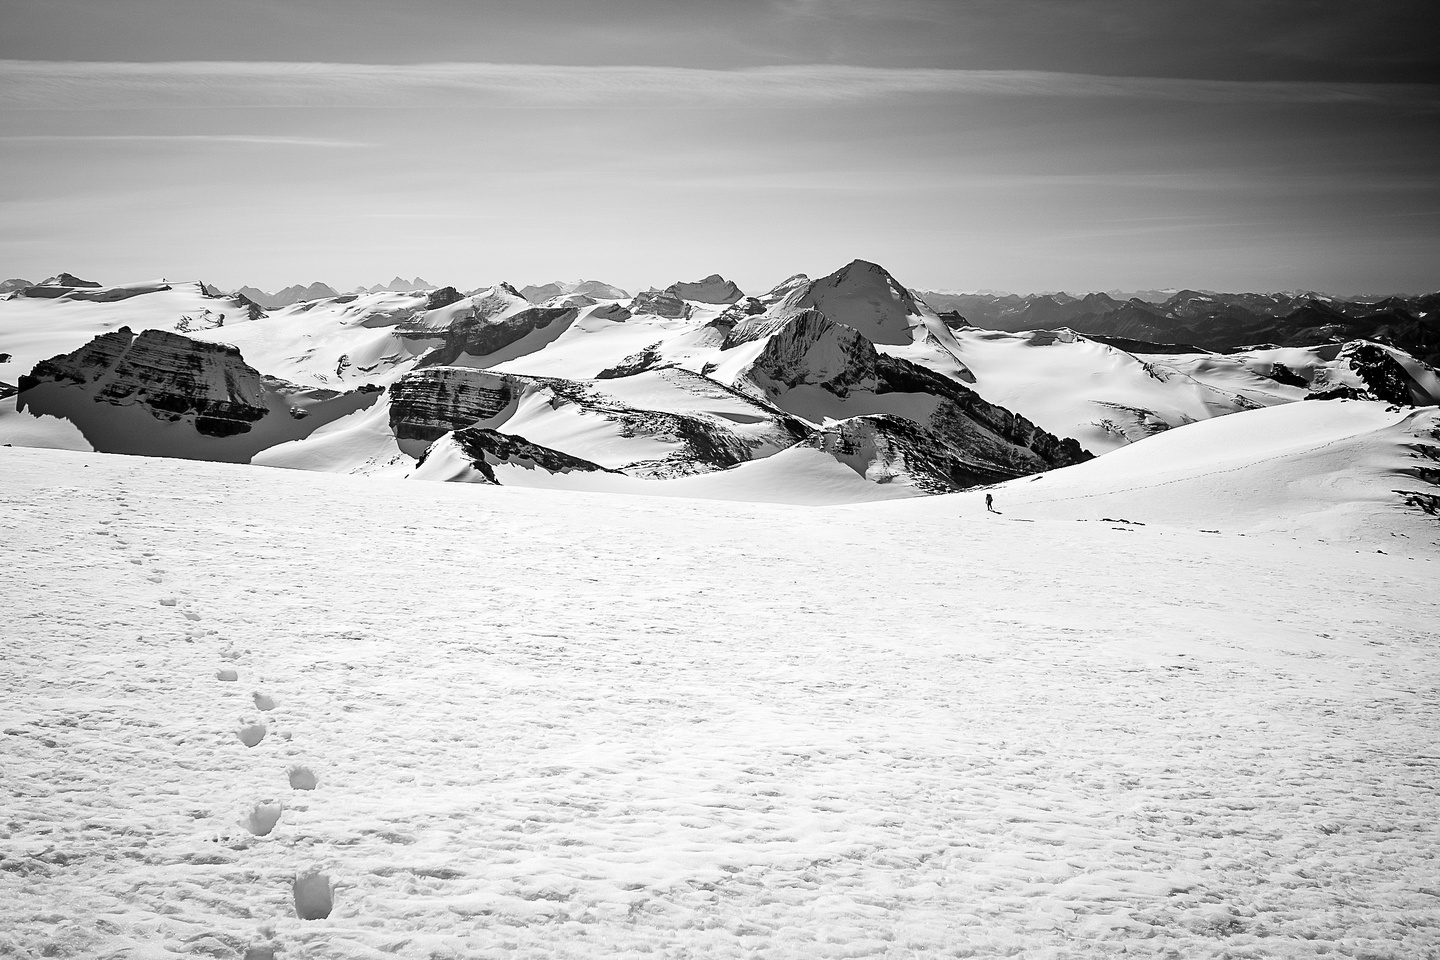 Raf comes up to the summit behind me in this view towards the Wapta Icefield including Peyto, Trapper and Baker. Balfour in the distance.